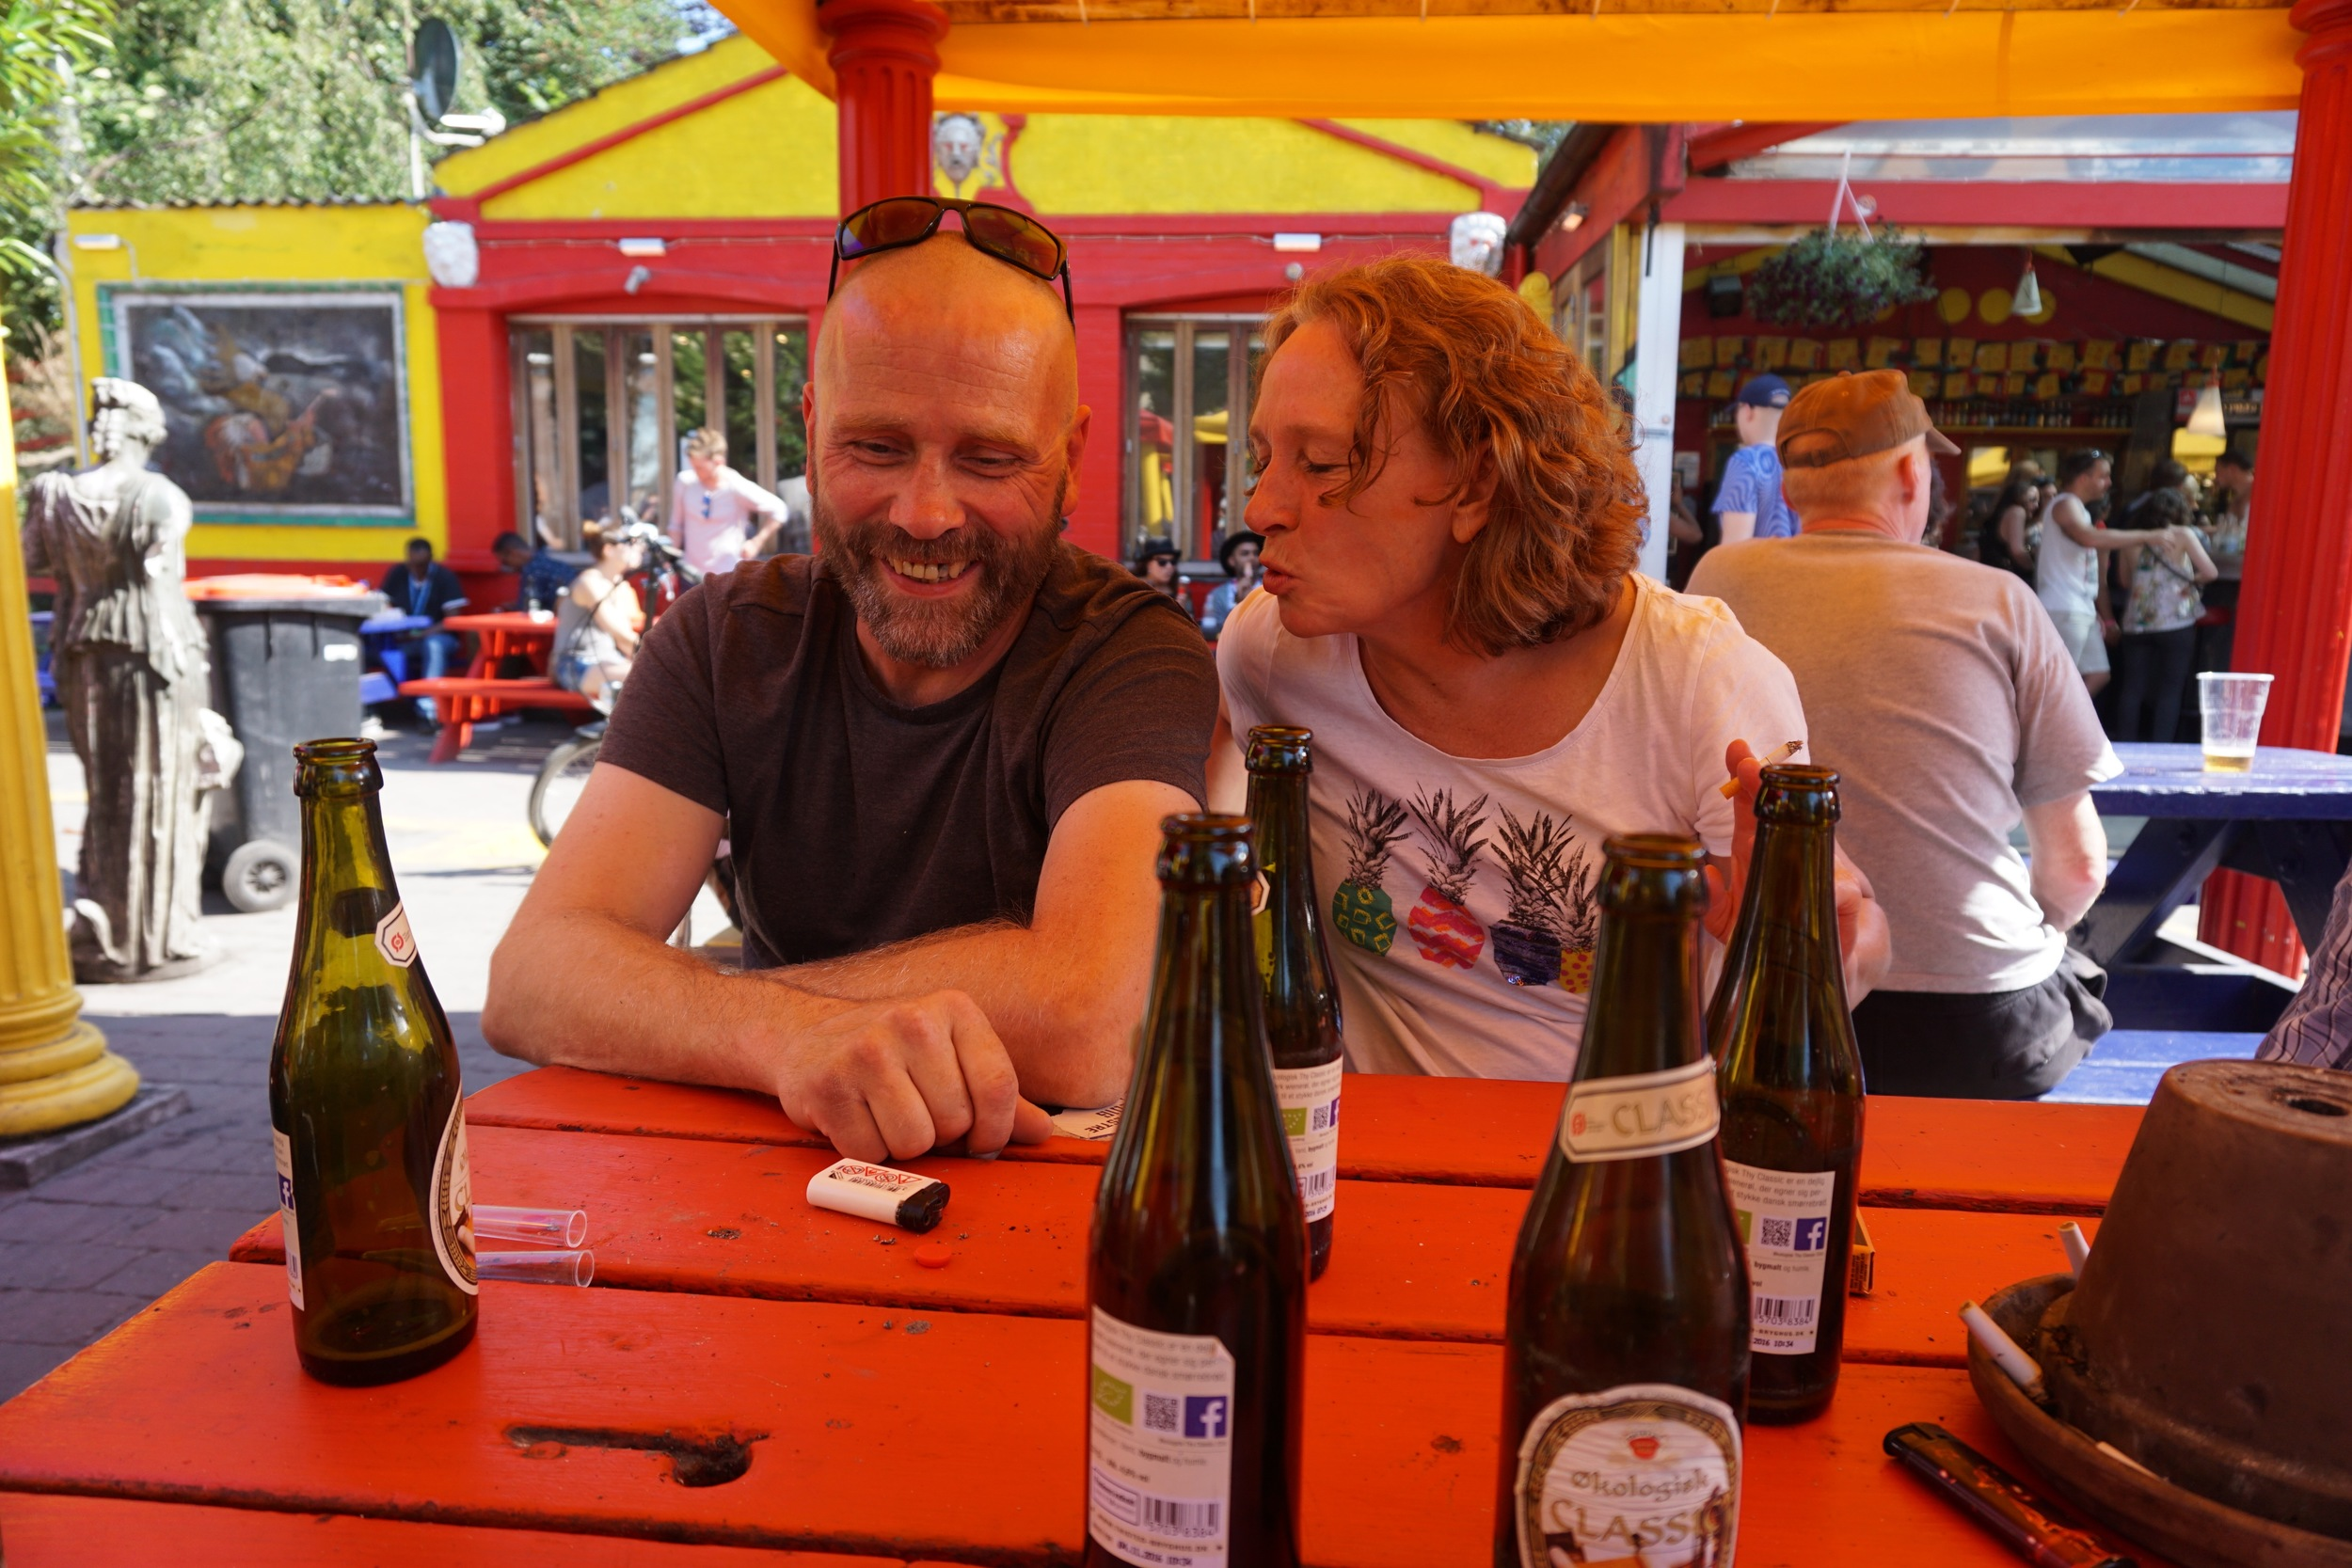 Some beers and good conversation with this lovely couple, our new Freetown friends.